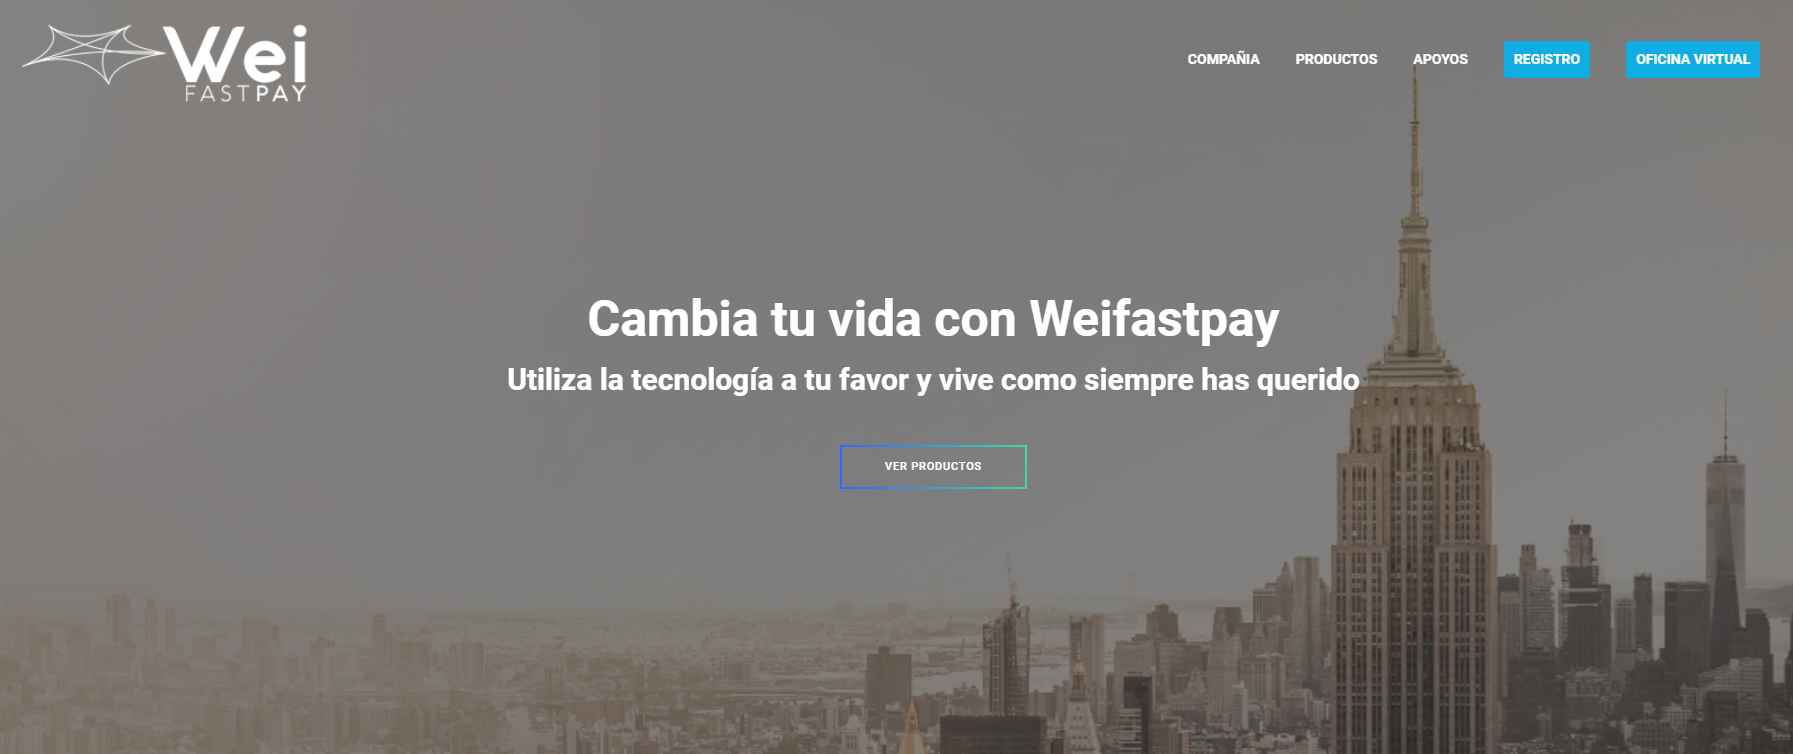 analisis completo weifastpay